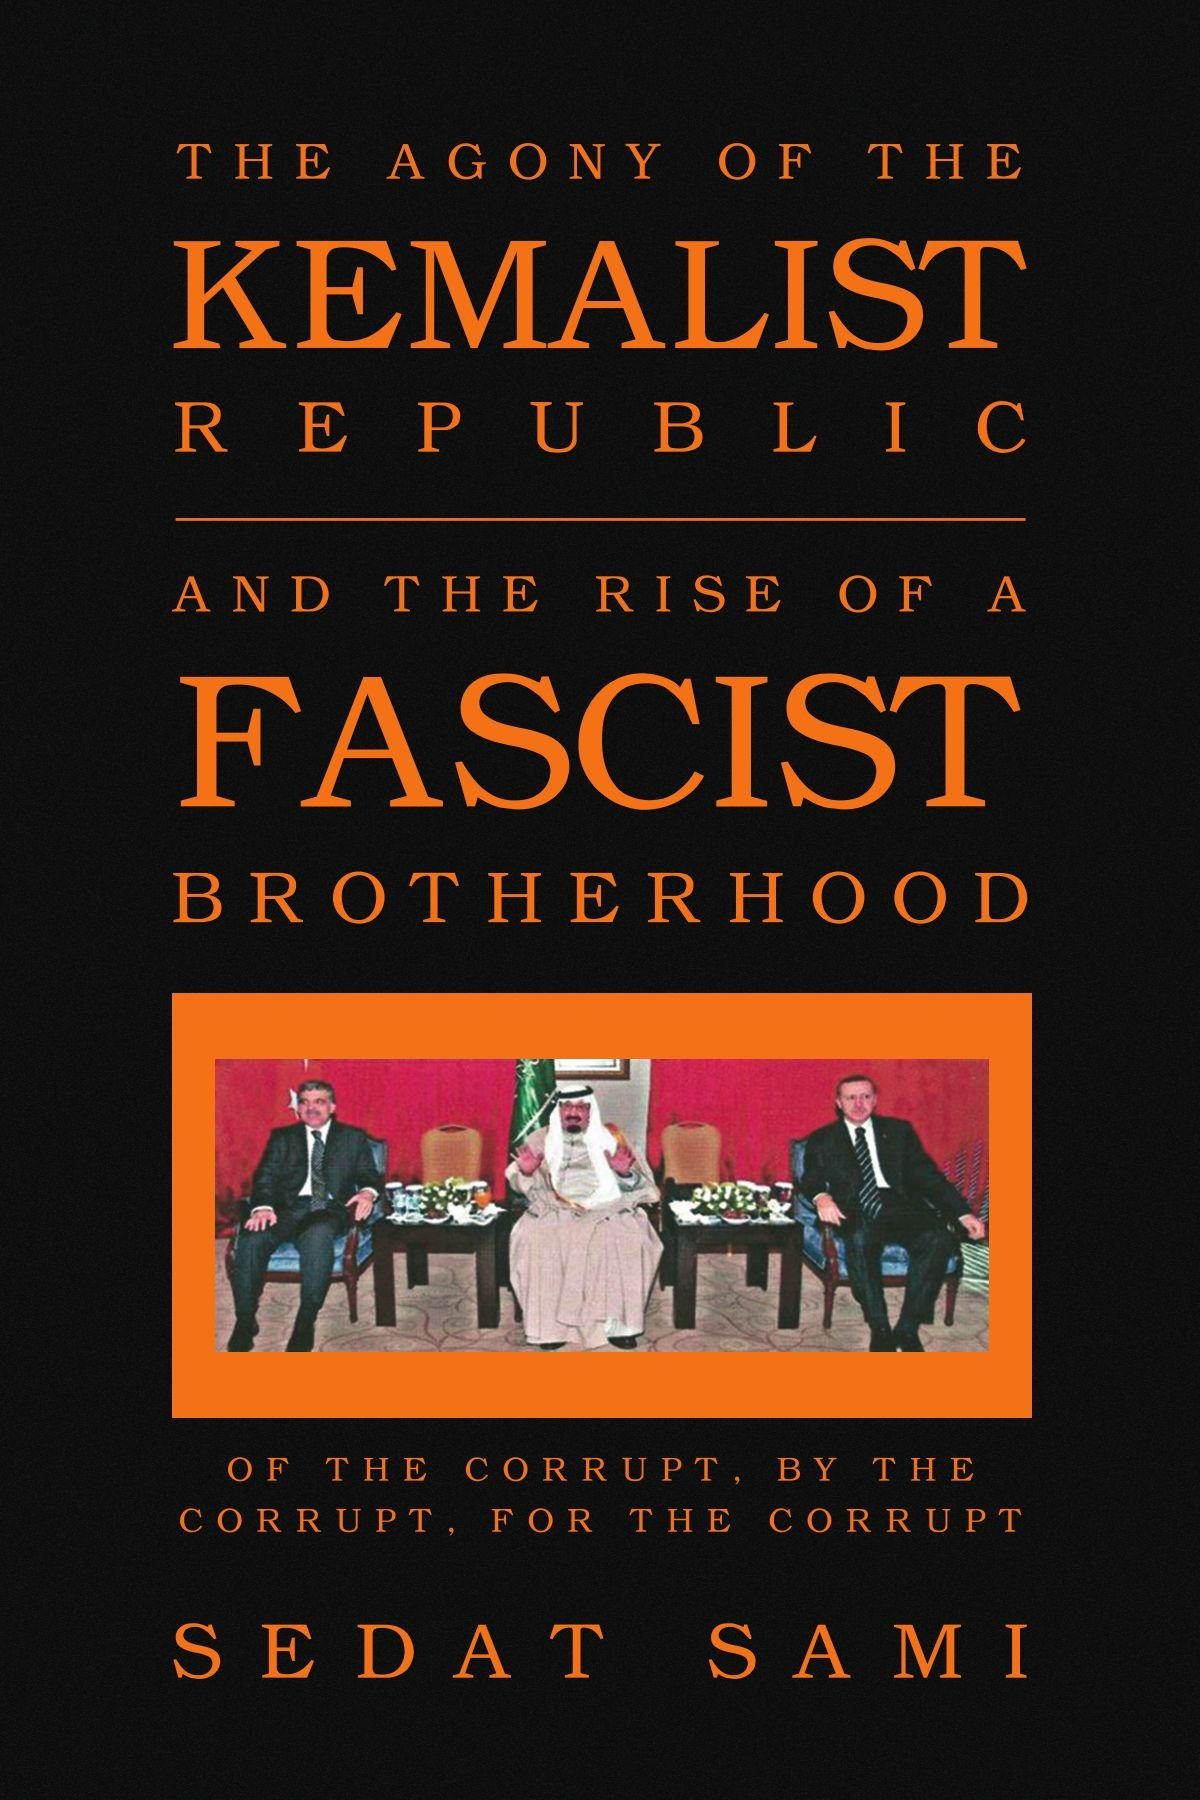 Read Online THE AGONY OF THE KEMALIST REPUBLIC AND THE RISE OF A FASCIST BROTHERHOOD: OF THE CORRUPT, BY THE CORRUPT, FOR THE CORRUPT ebook